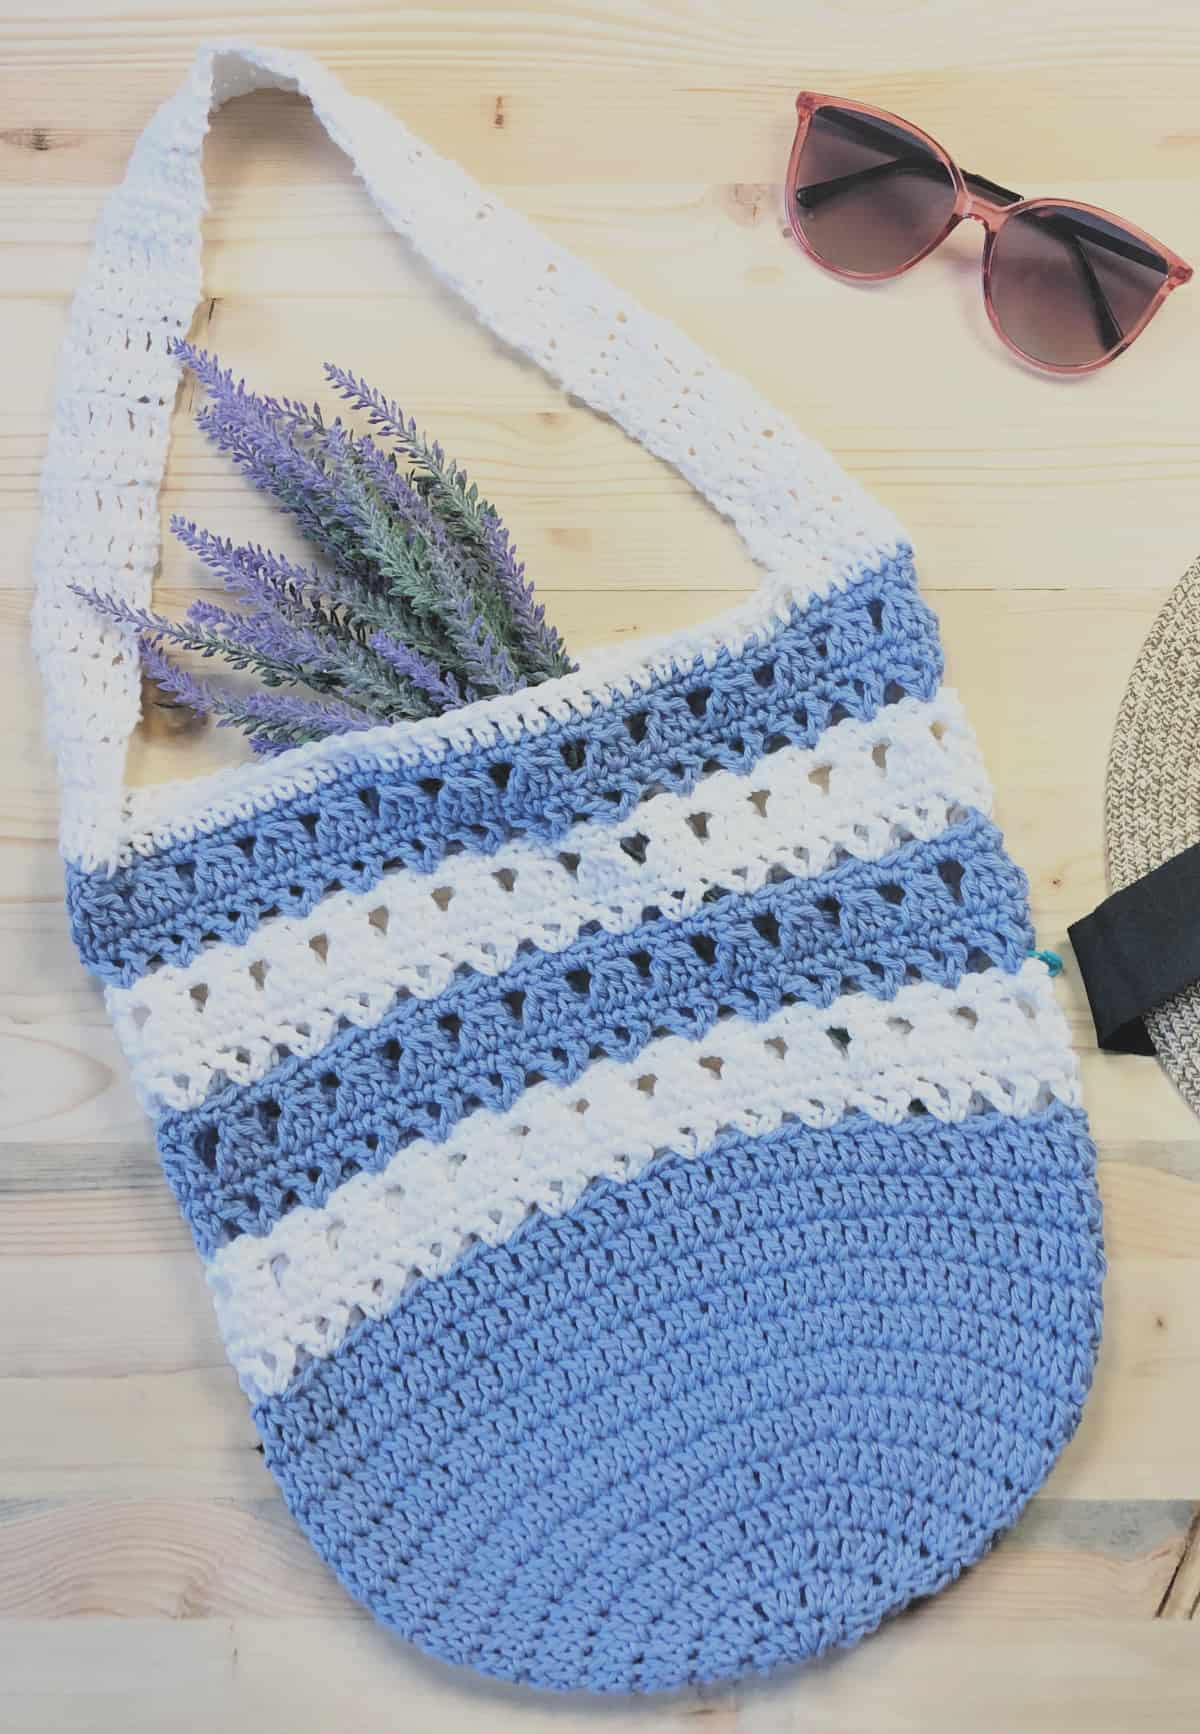 Free crochet tote bag pattern in blues and whites flat with lavender and sunglasses.